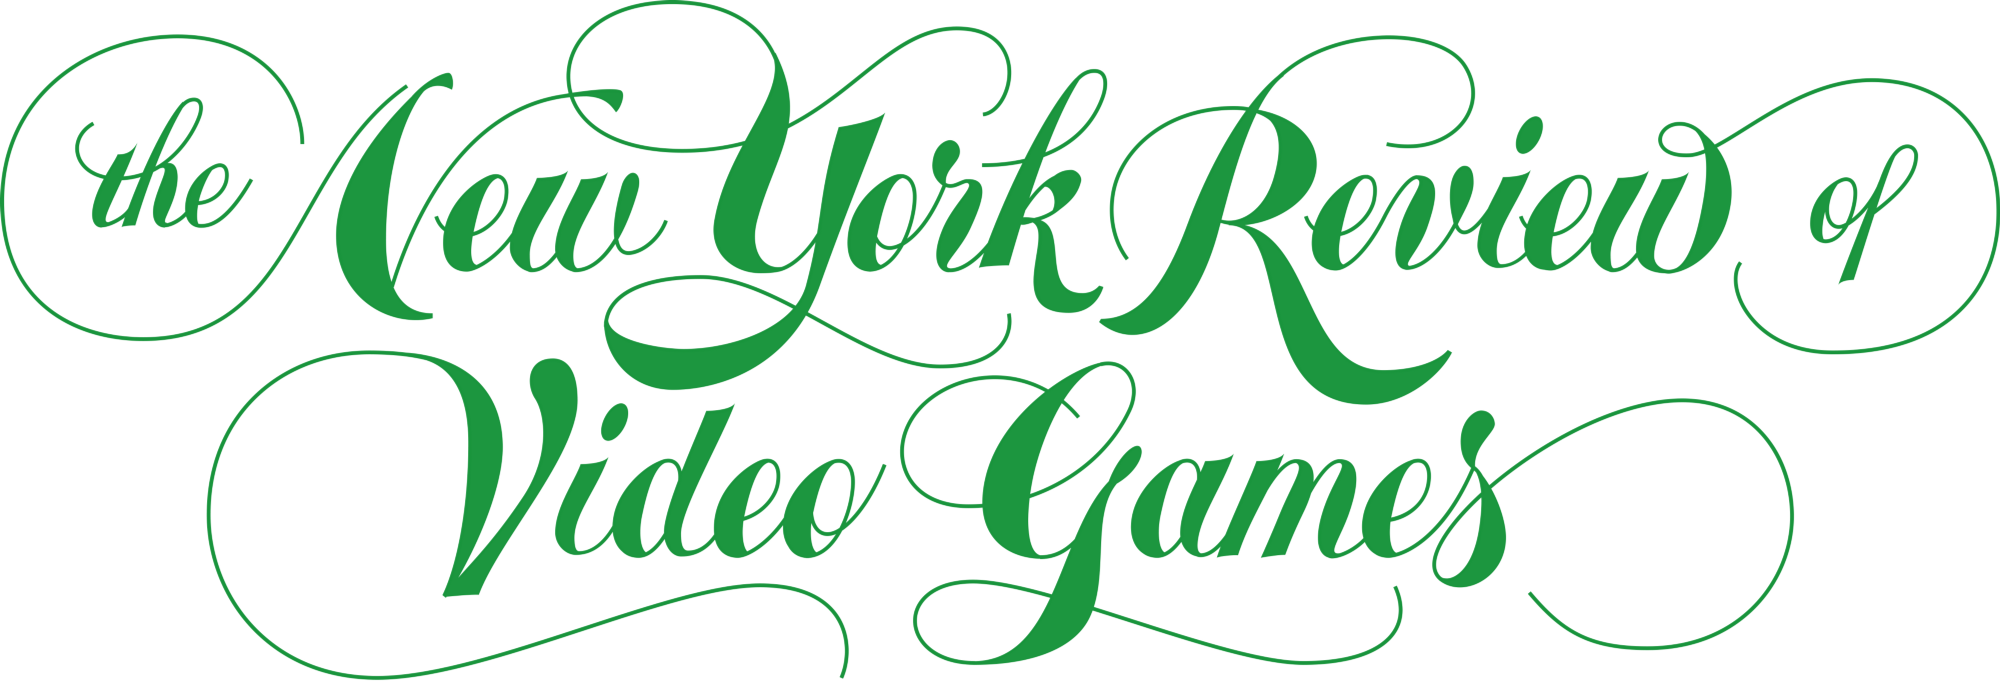 The New York Review of Video Games